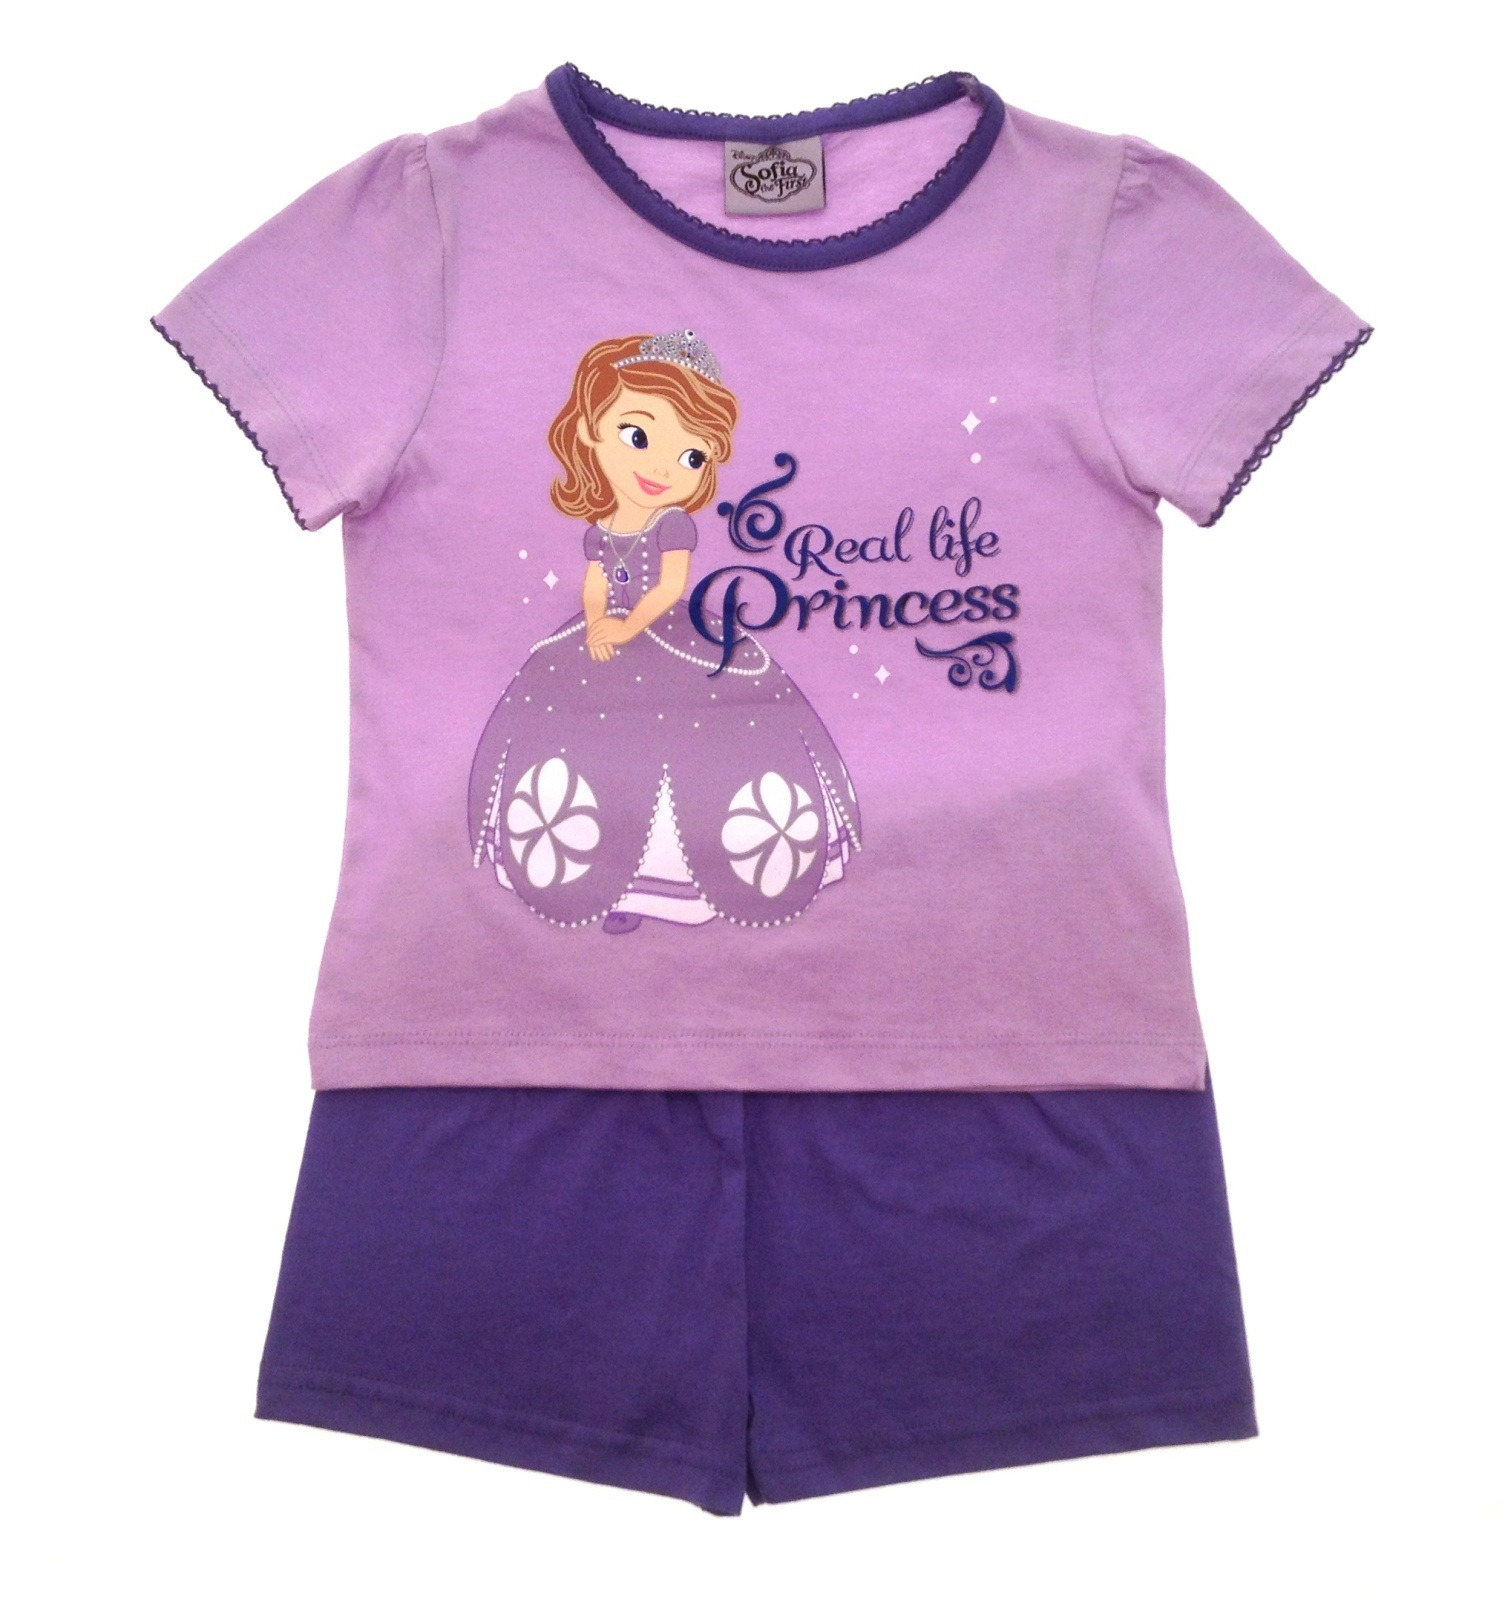 Girls Disney Princess Sophia the first short pyjamas summer pjs